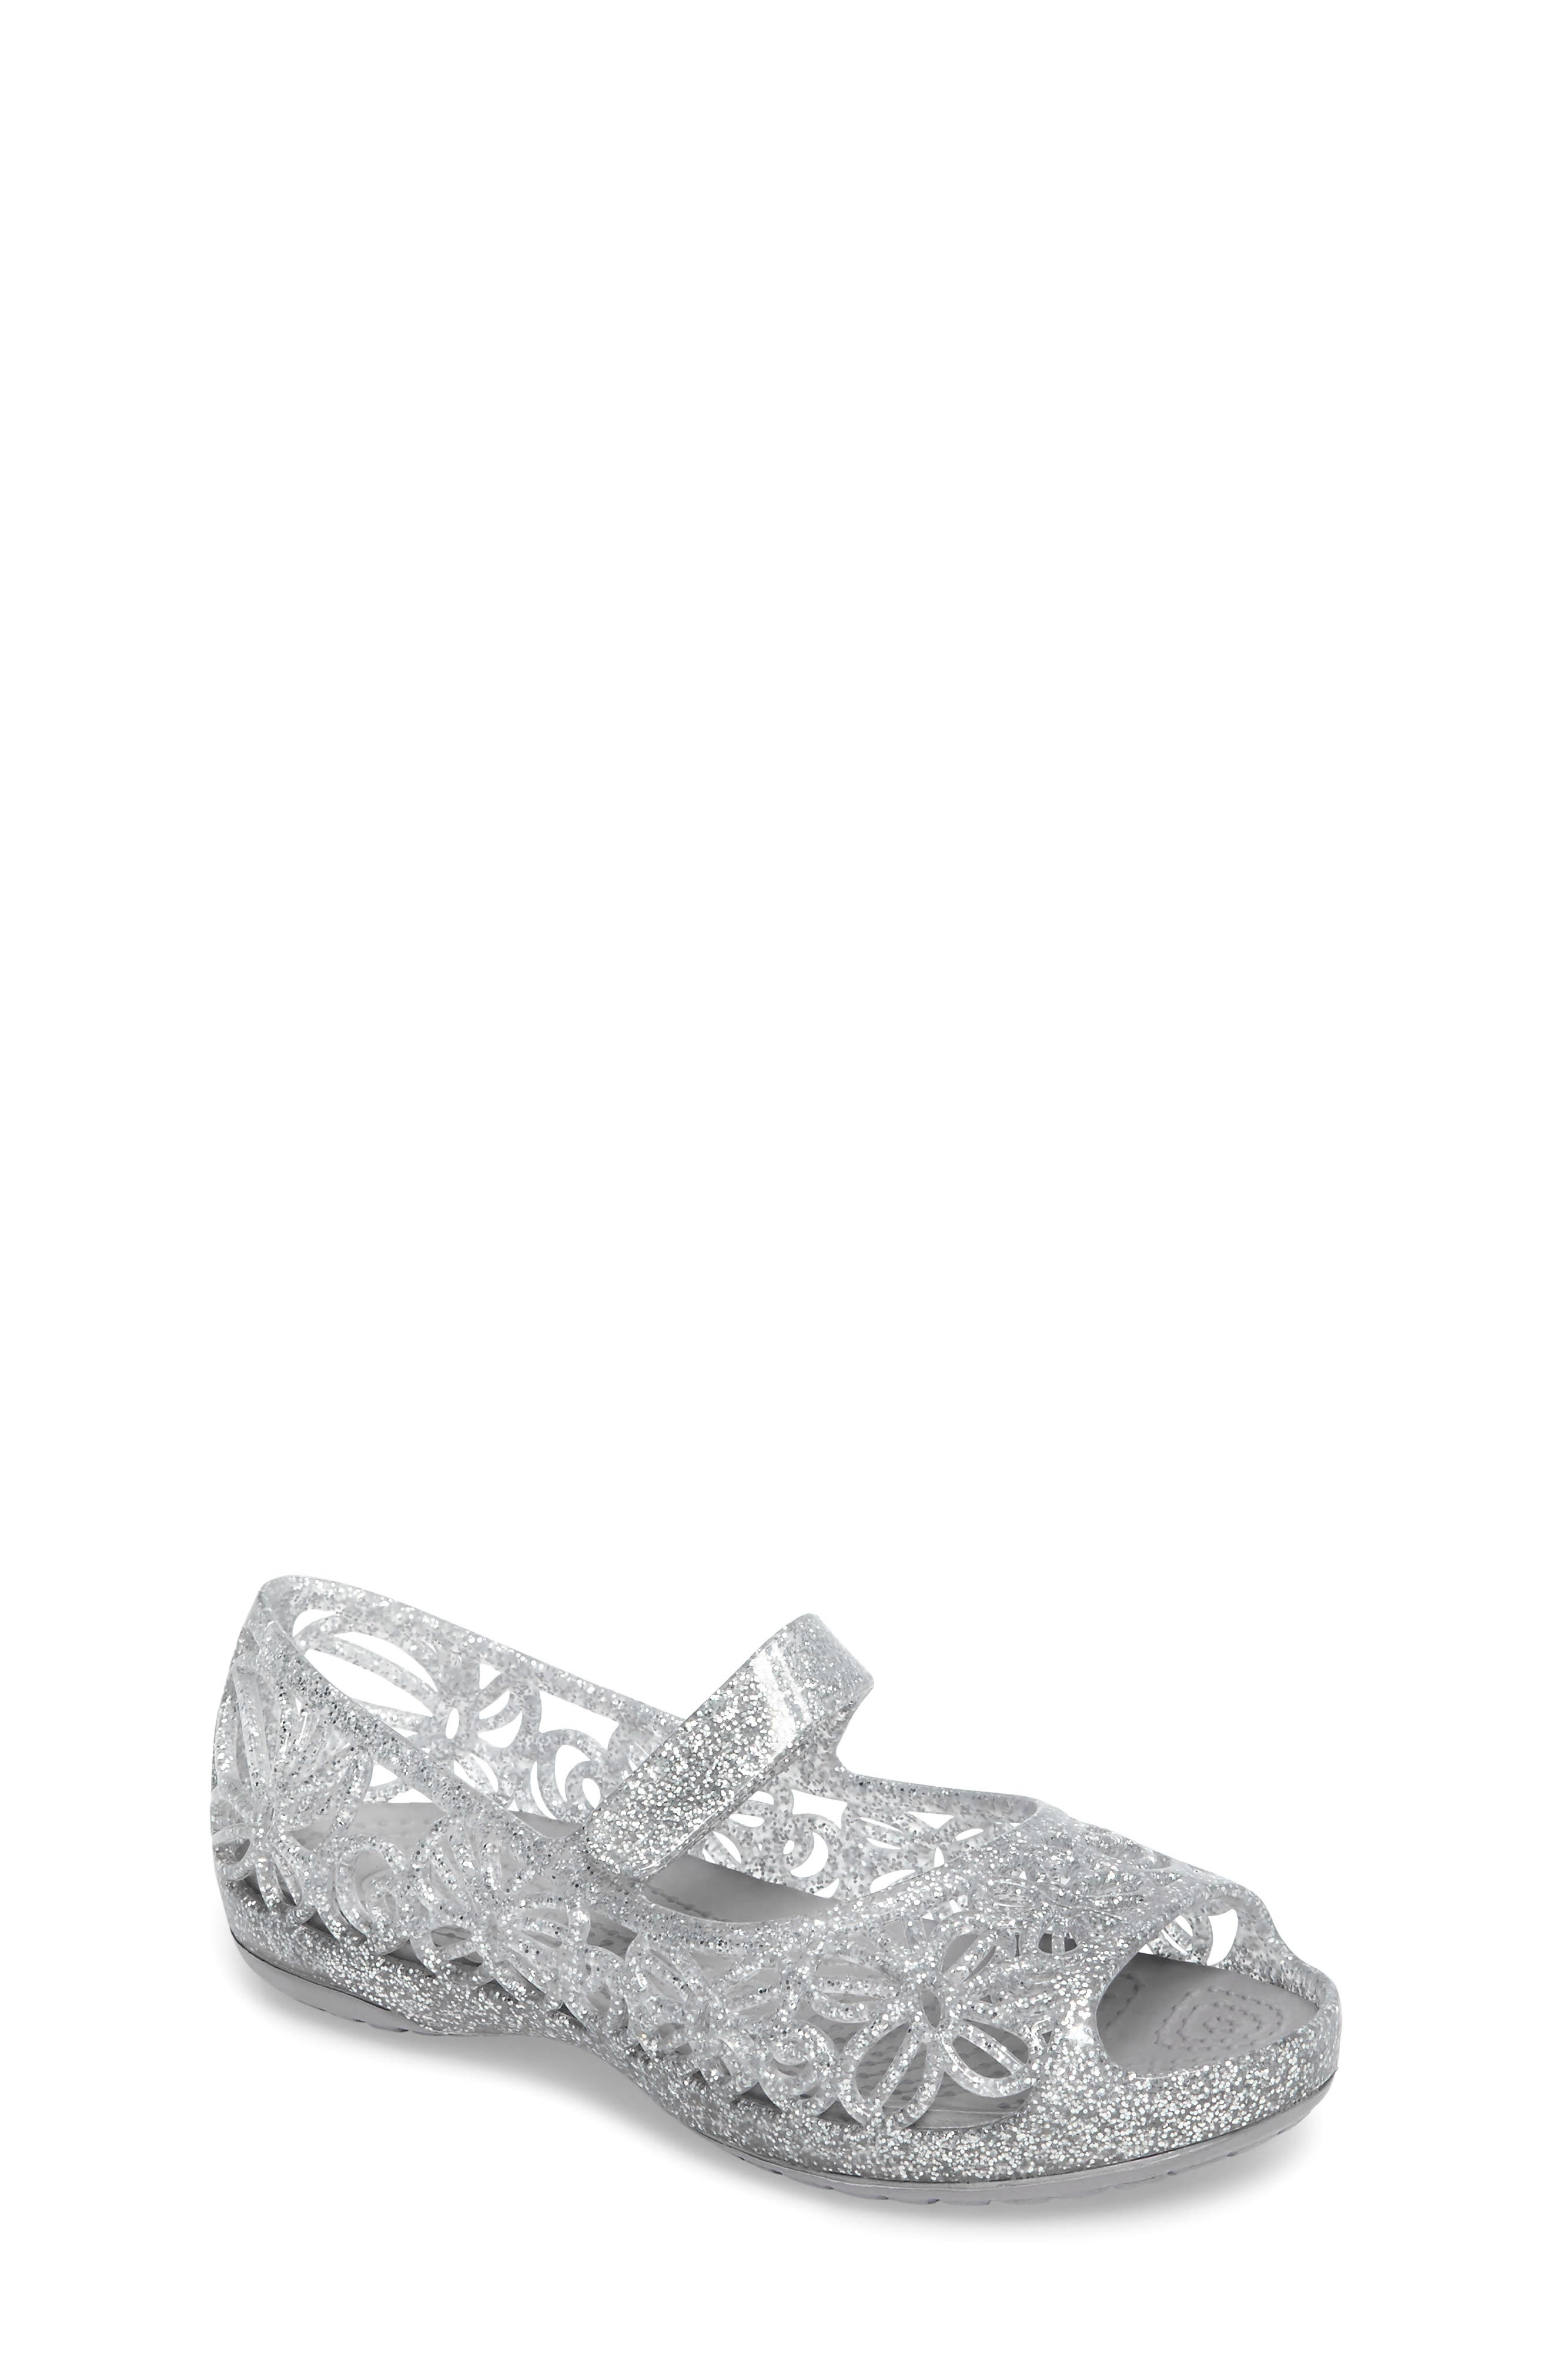 'Isabella' Jelly Flat,                         Main,                         color, 040